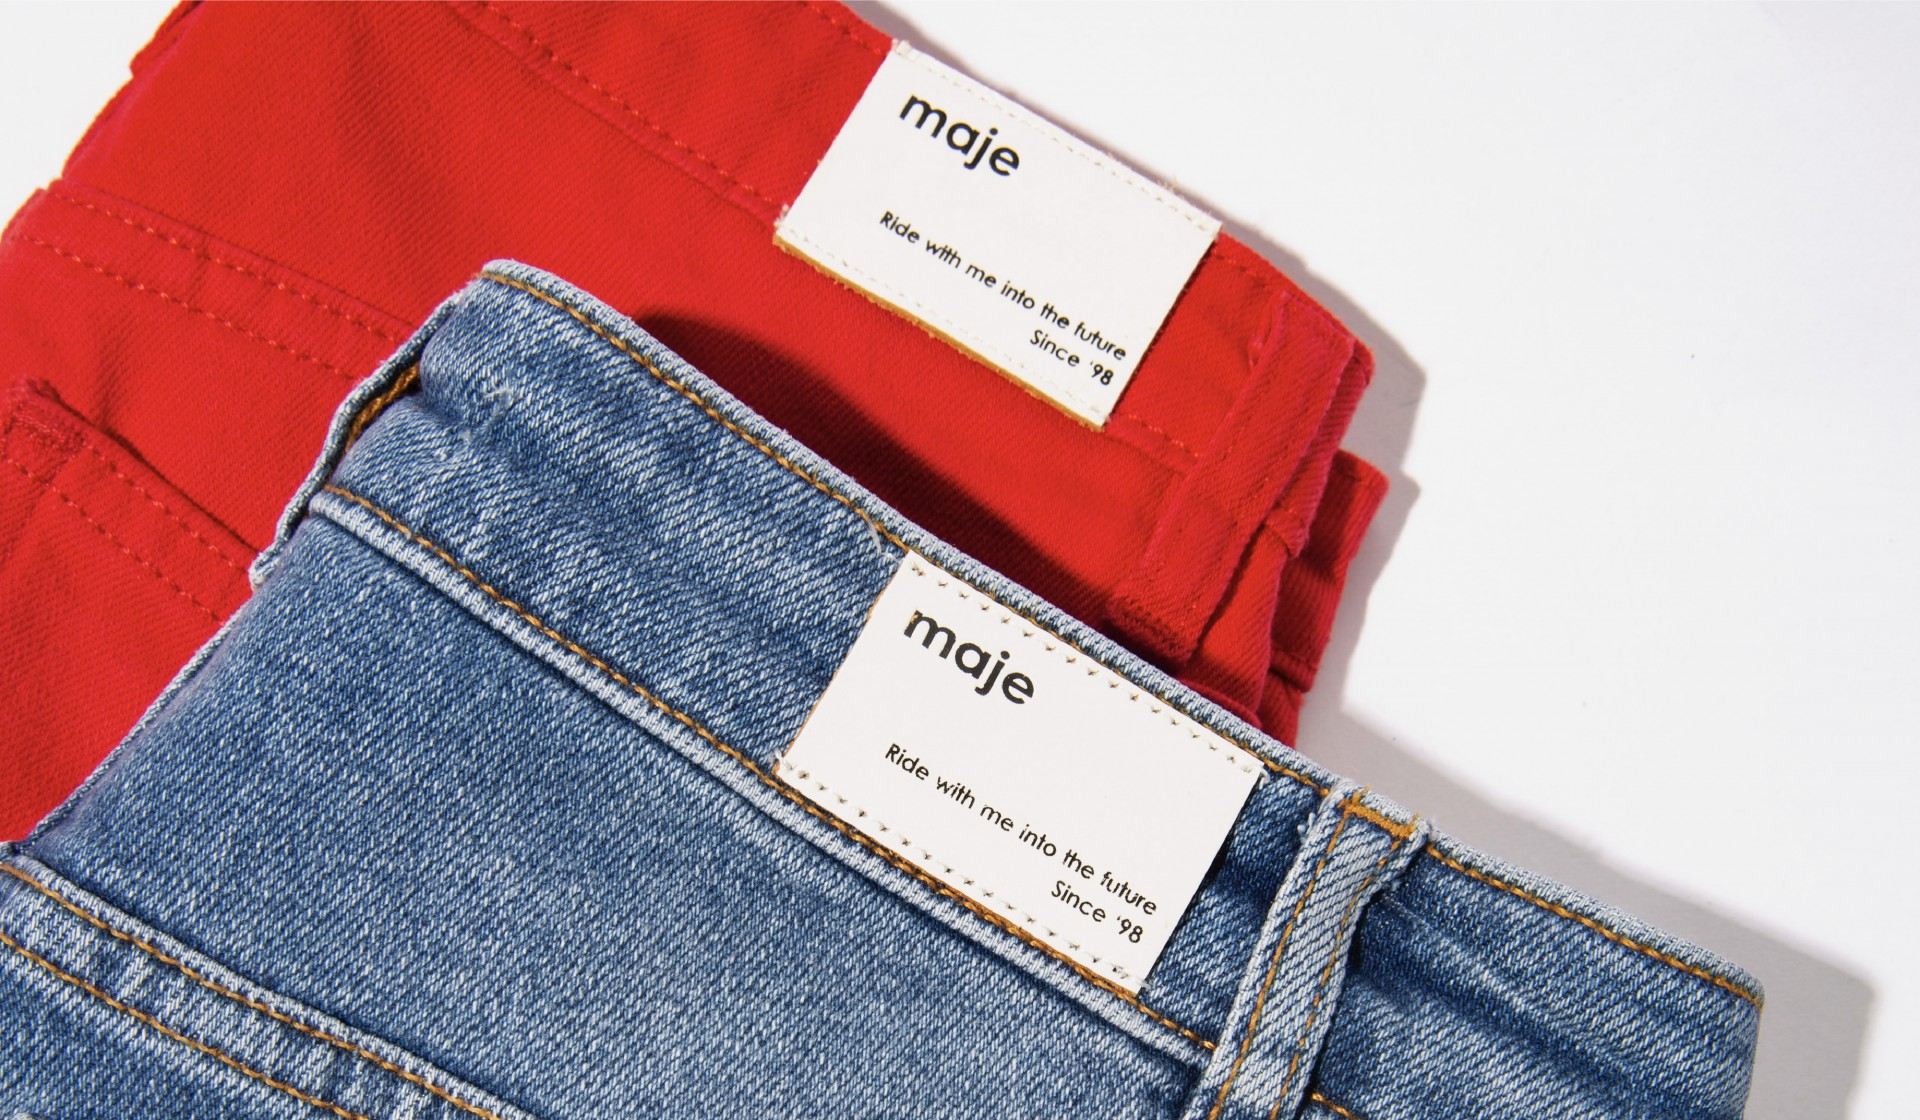 260 Sample Sale: Maje